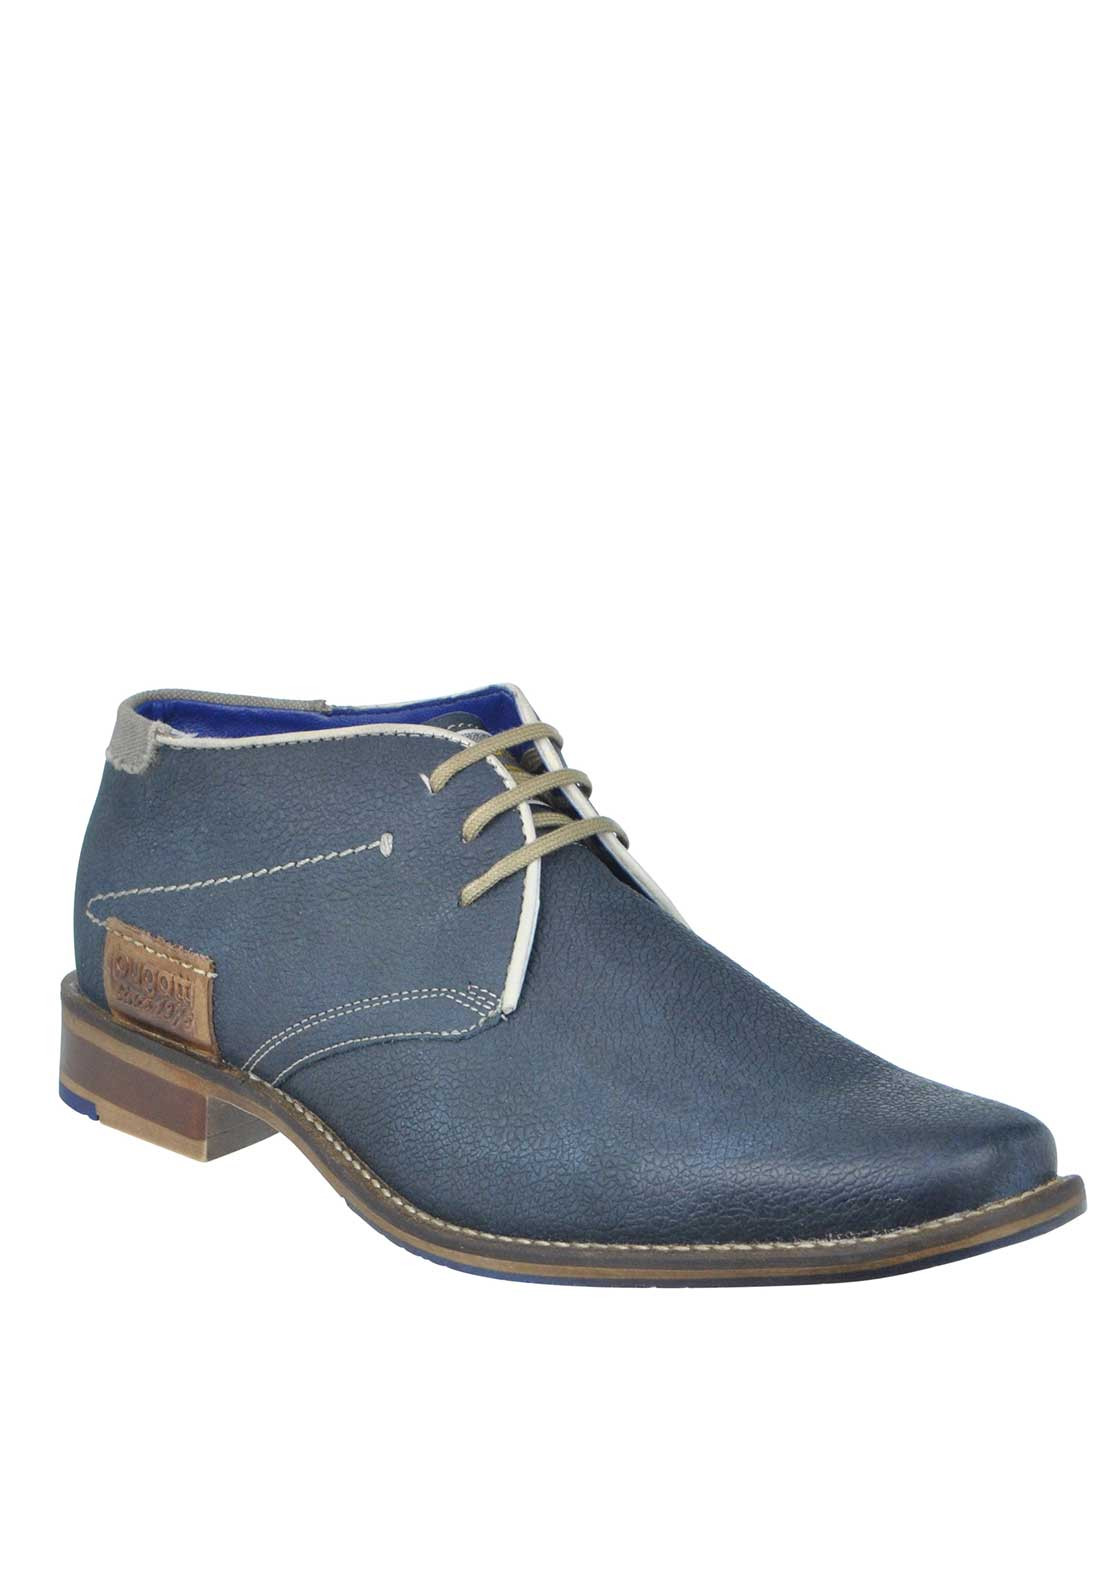 Bugatti Leather Lace Up Desert Boot, Navy